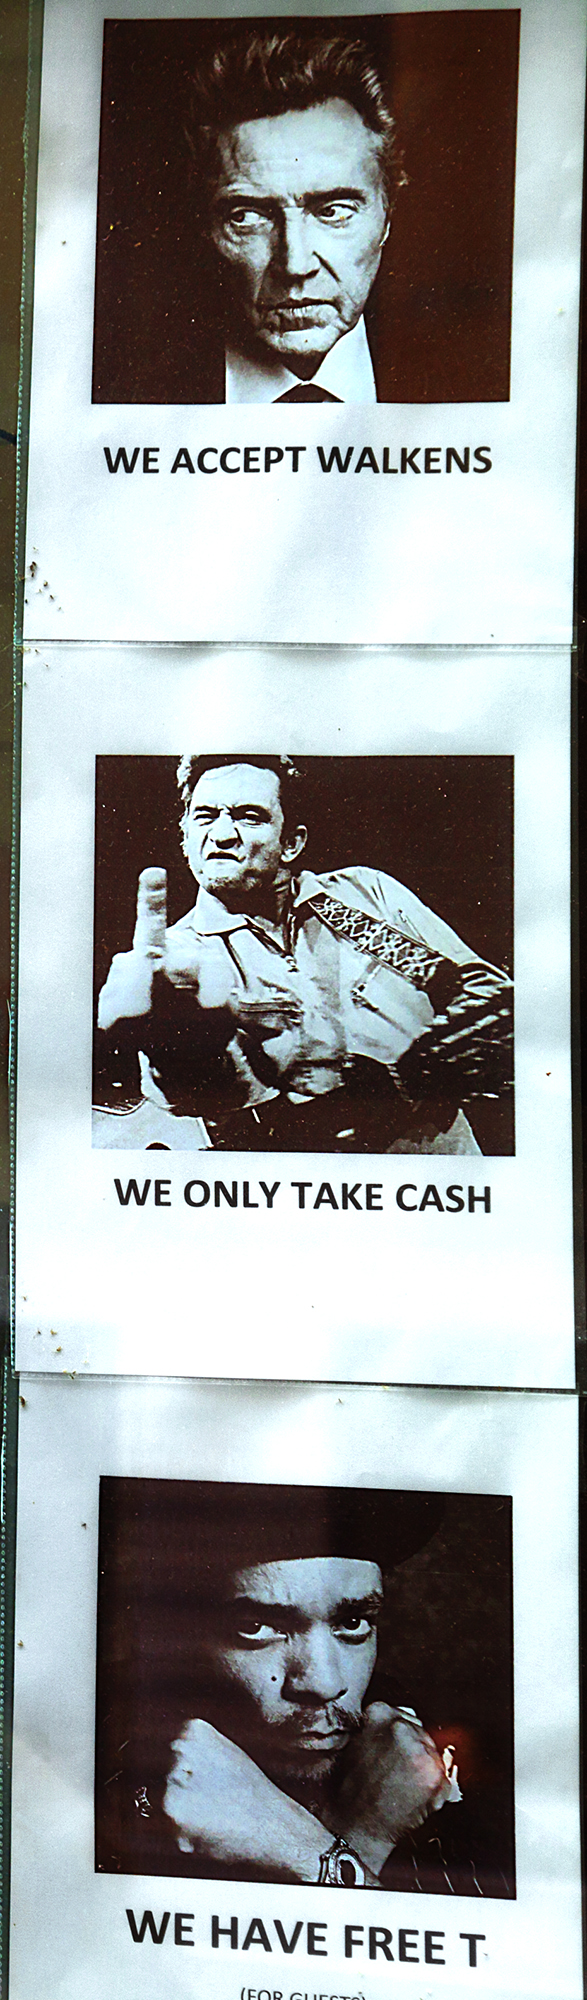 WE ONLY TAKE CASH--Budapest (detail)